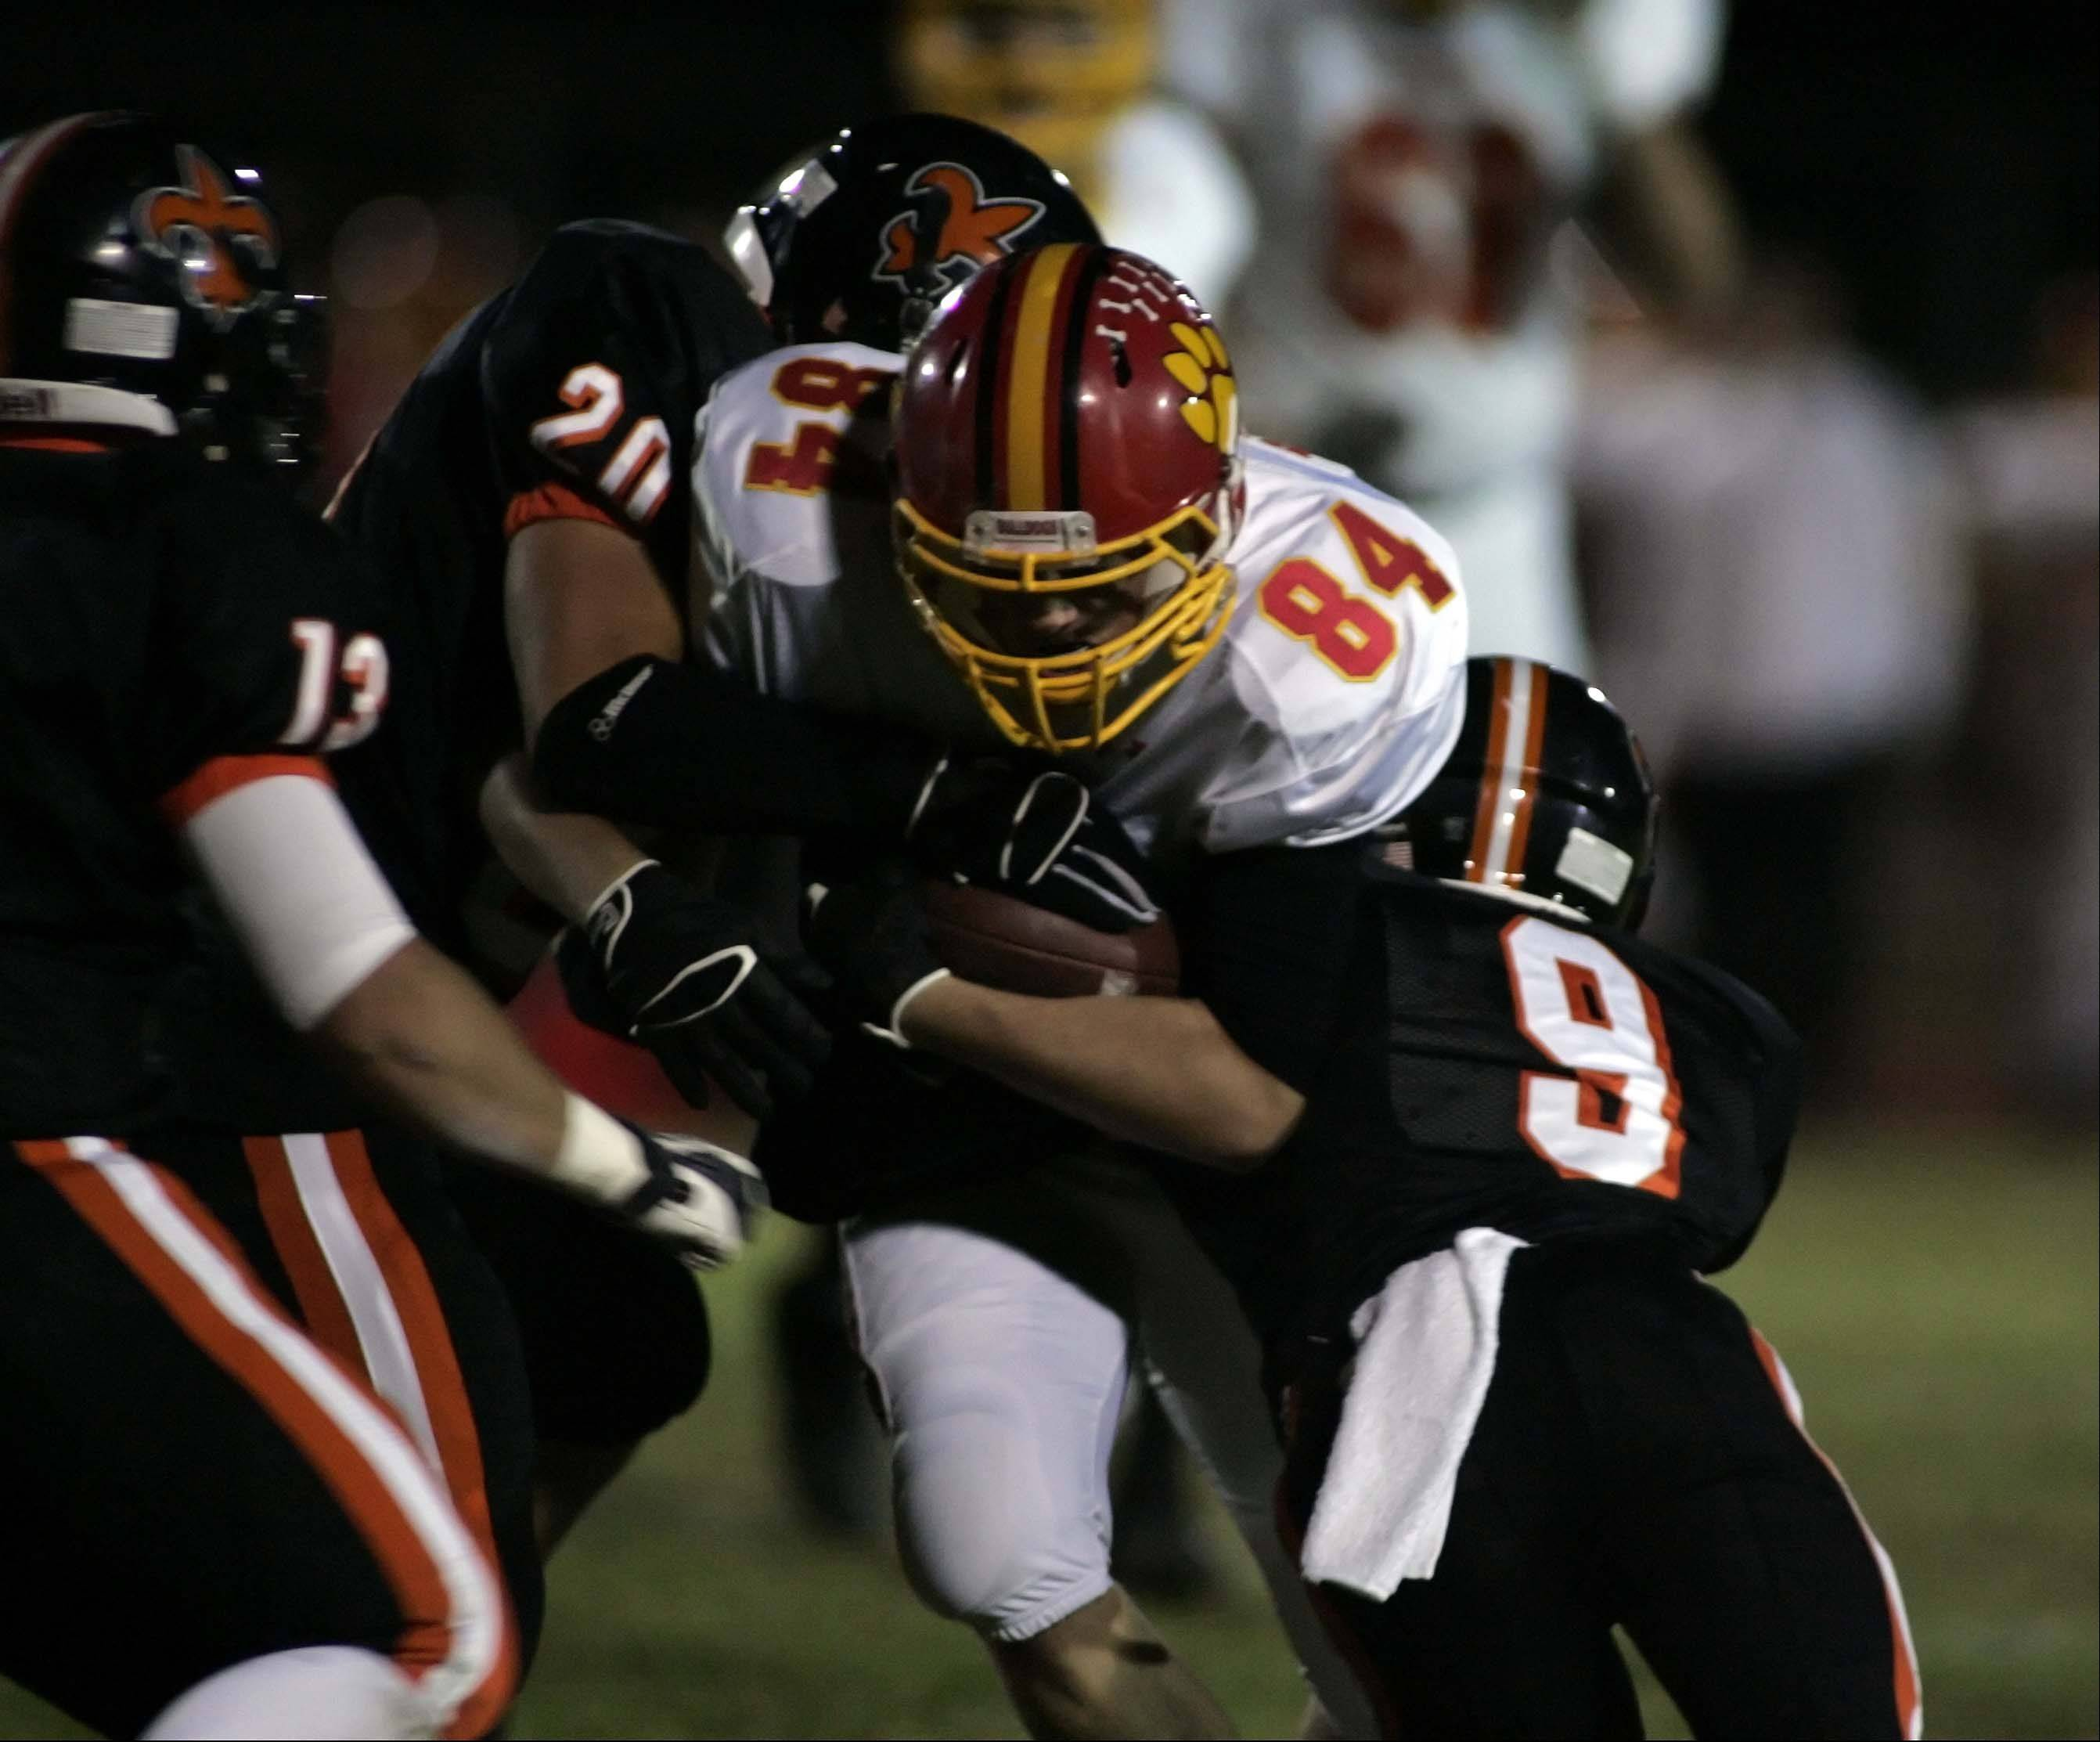 Week 8 - Images from the Batavia vs. St. Charles East football game Friday, October 12, 2012.